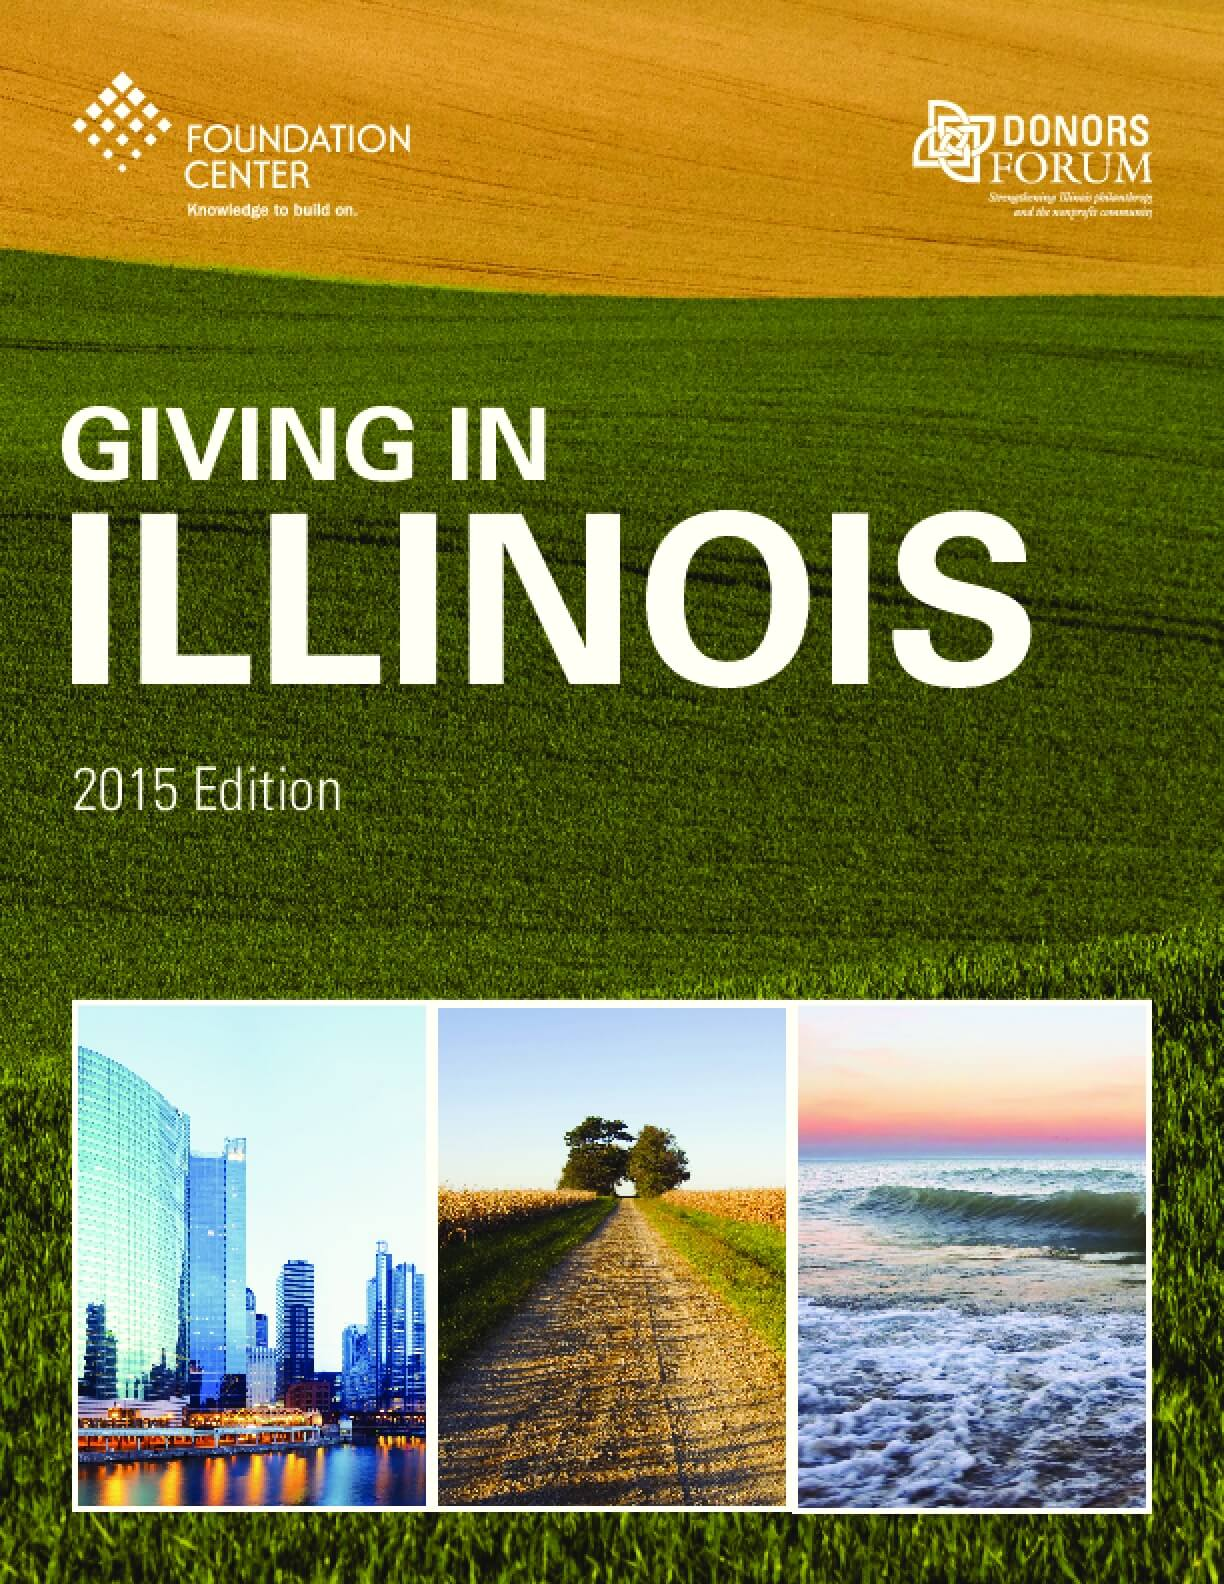 Giving in Illinois, 2015